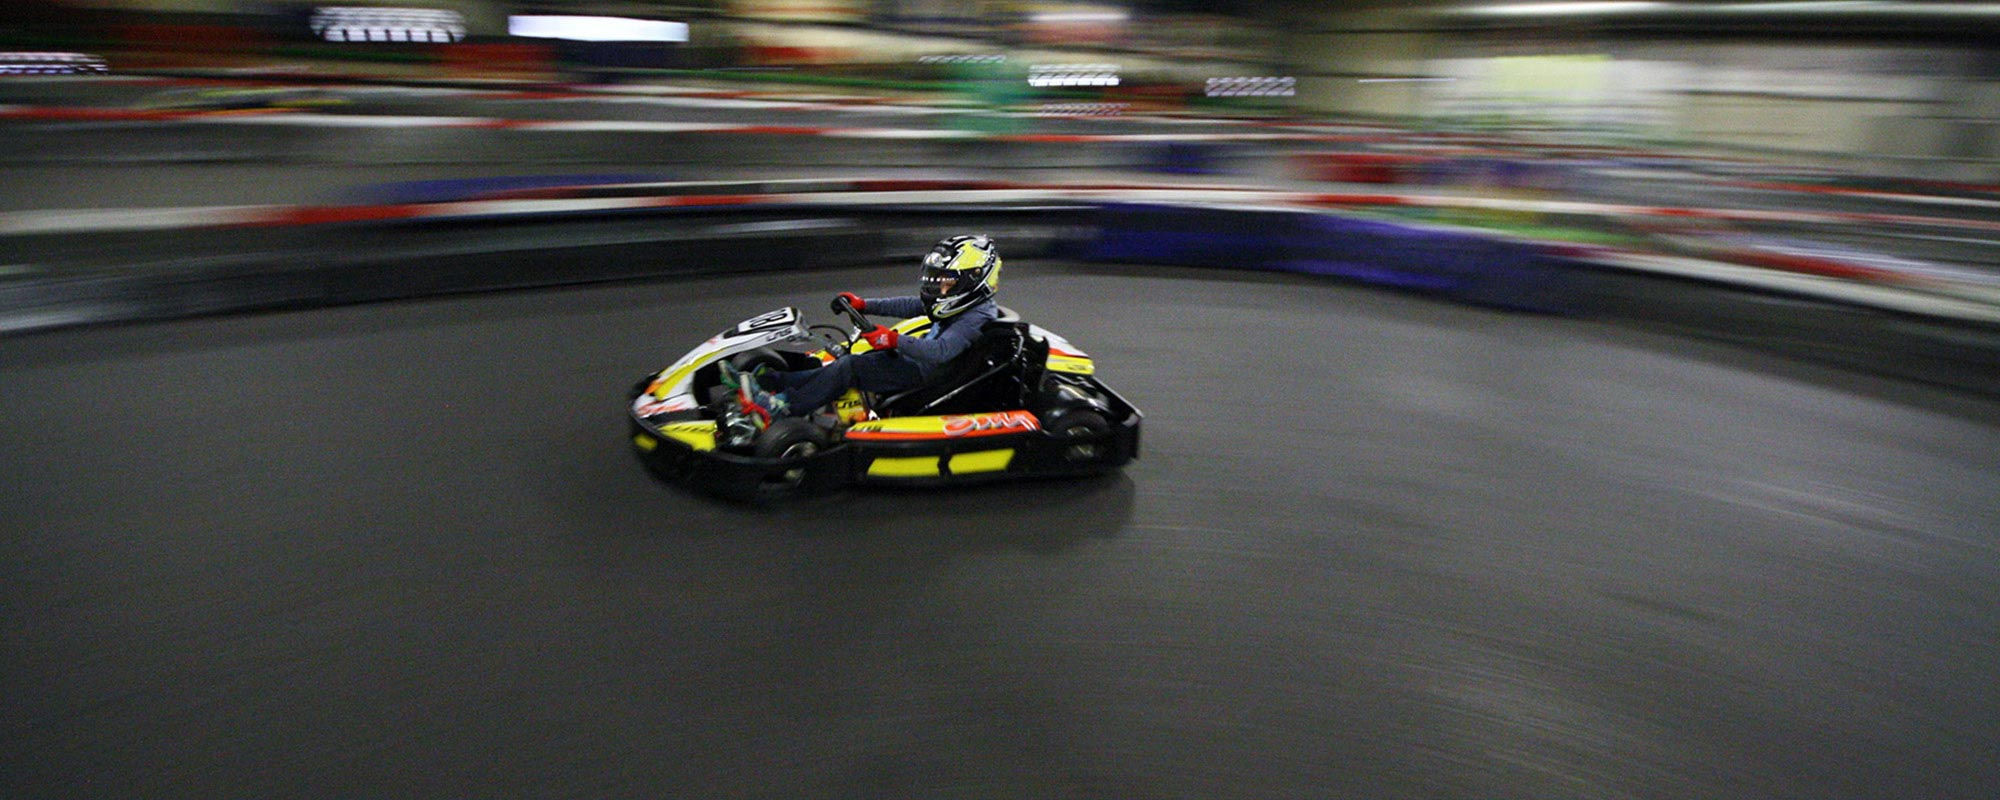 ebafkc-juniorkarting-2000x800-08